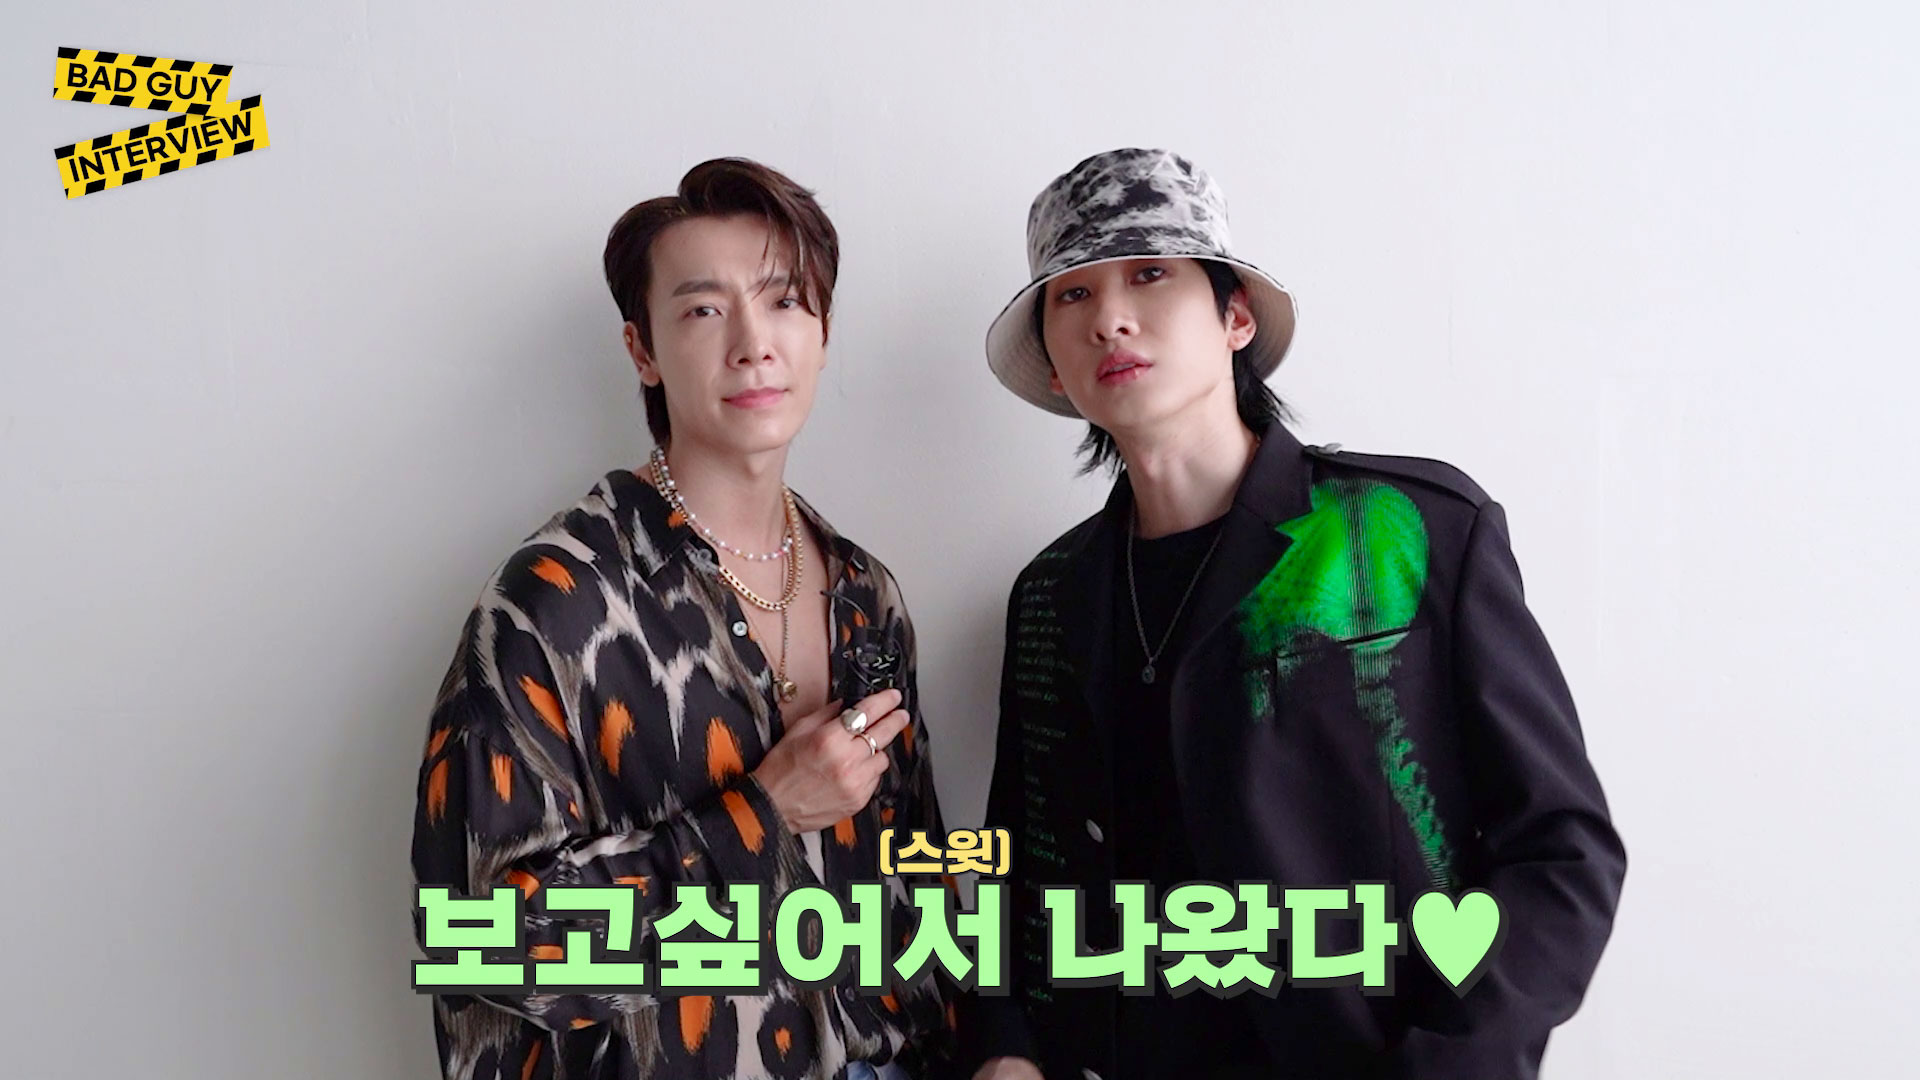 SUPER JUNIOR-D&E #BAD GUY INTERVIEW @'B.A.D' MV 촬영장